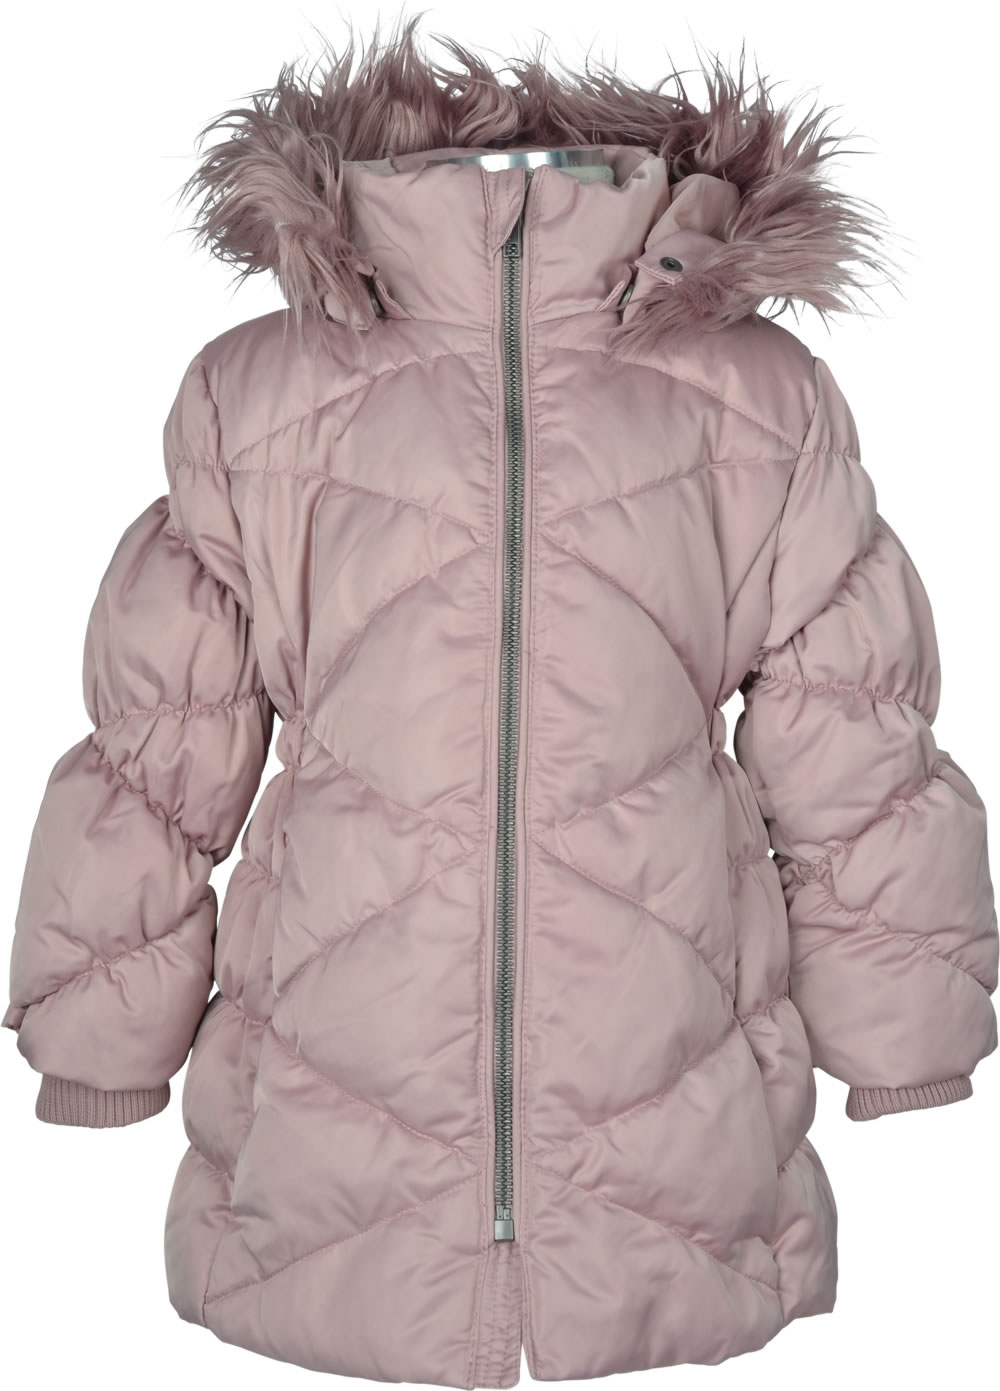 Winterjacke baby madchen name it